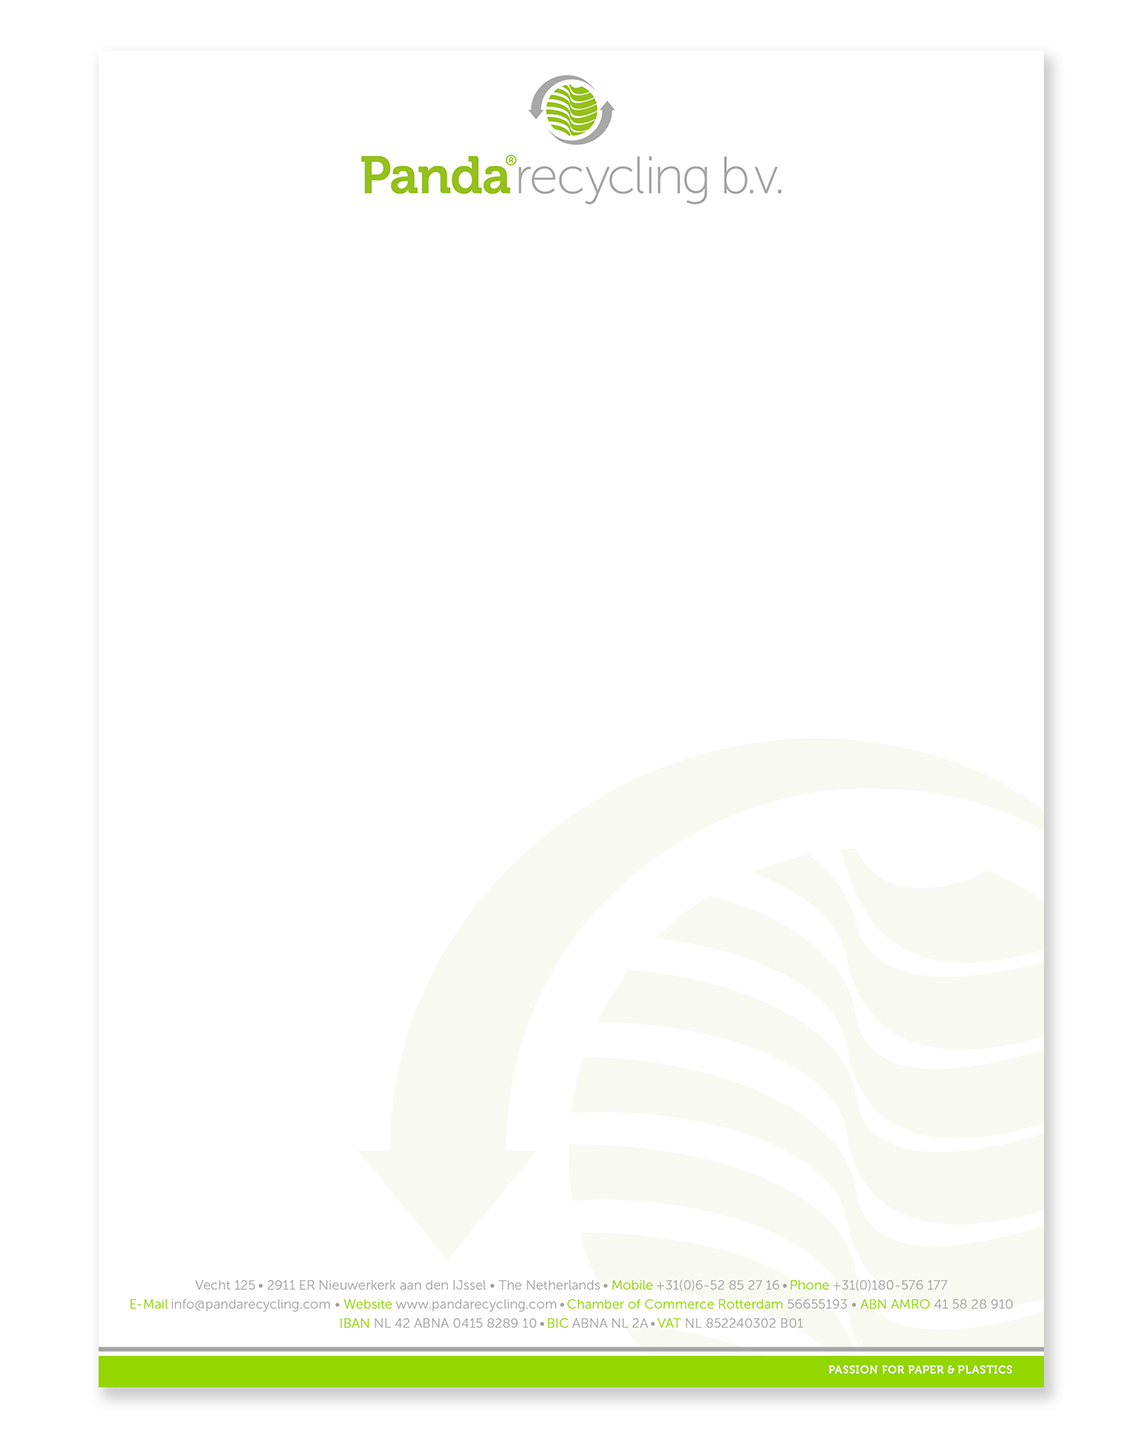 Panda Recycling-Briefpapier_pms